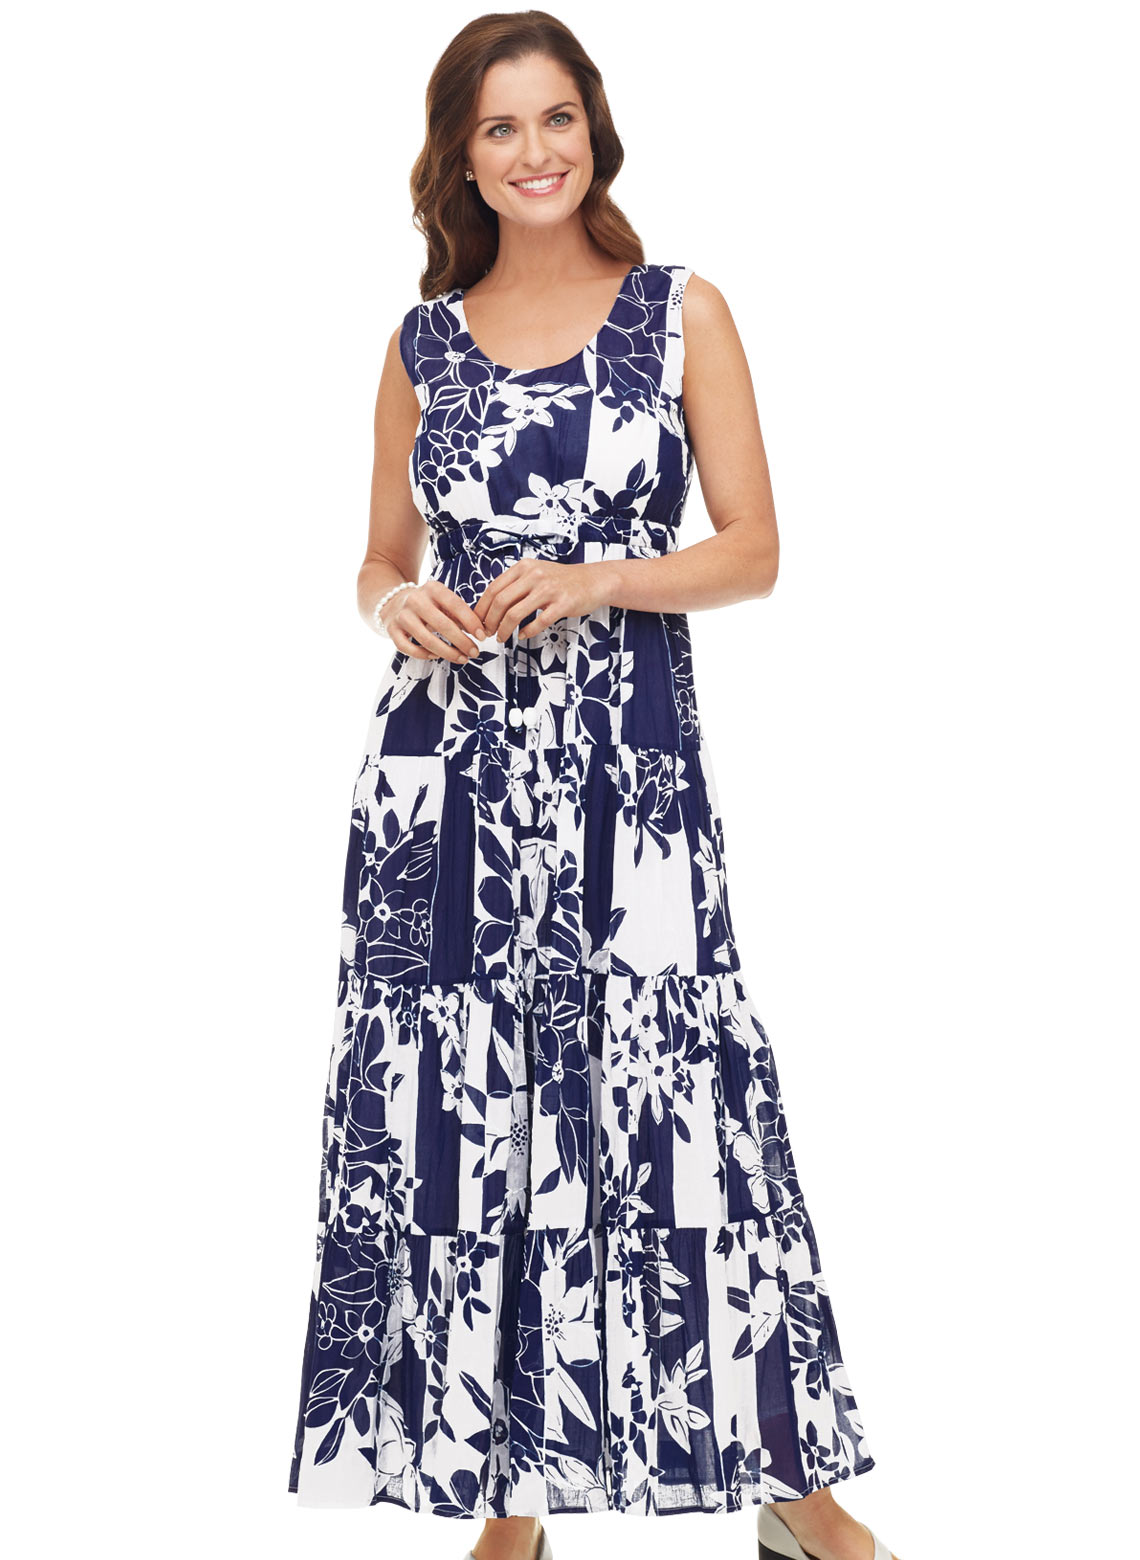 Shop for cotton maxi dress online at Target. Free shipping on purchases over $35 and save 5% every day with your Target REDcard.